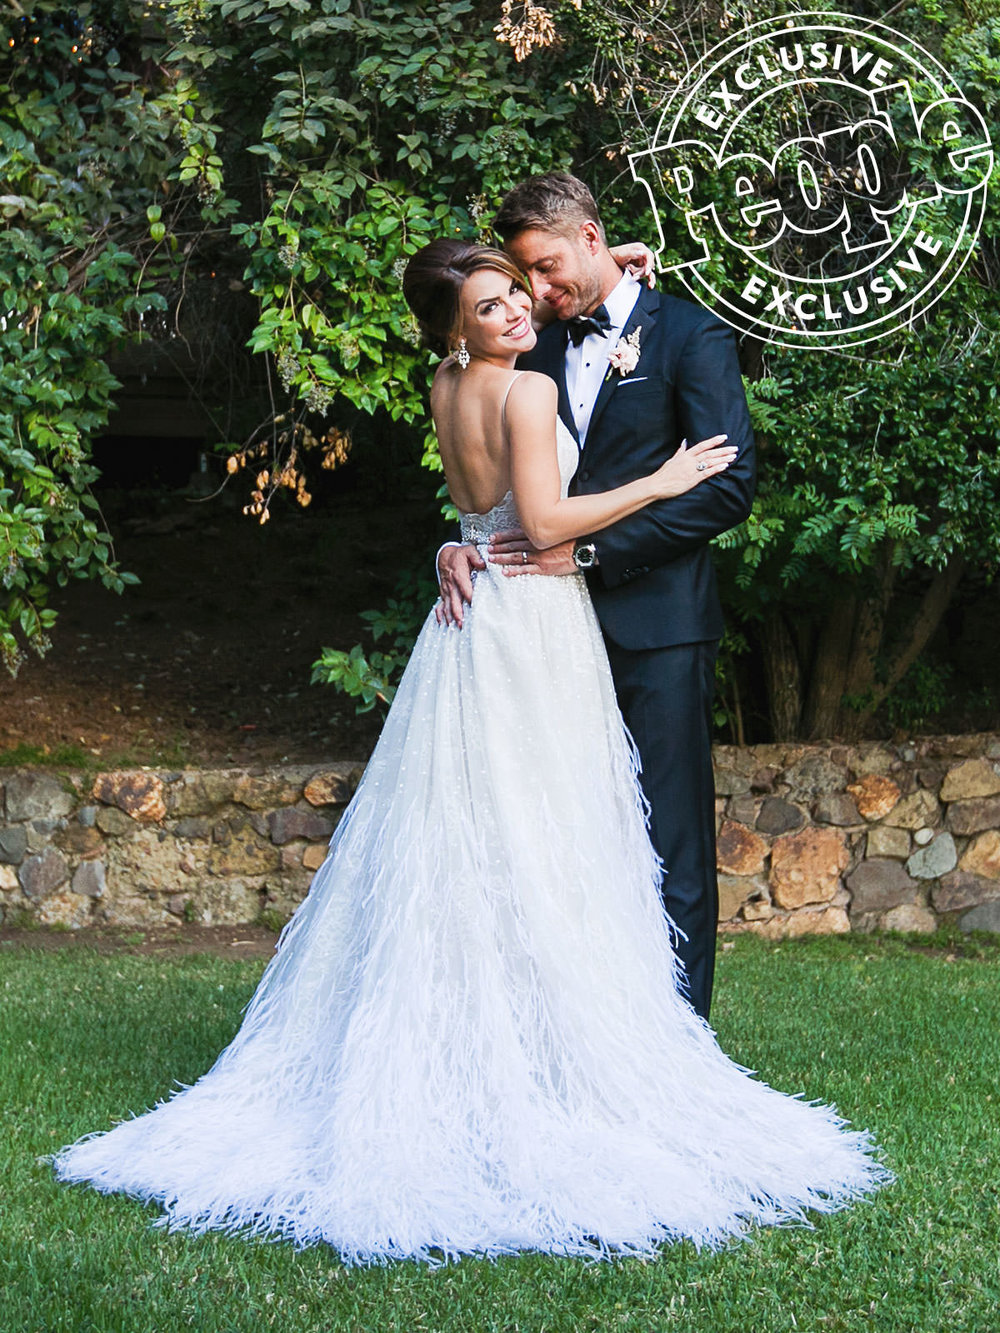 Justin Hartley Wedding in People Magazine at Calamigos Ranch